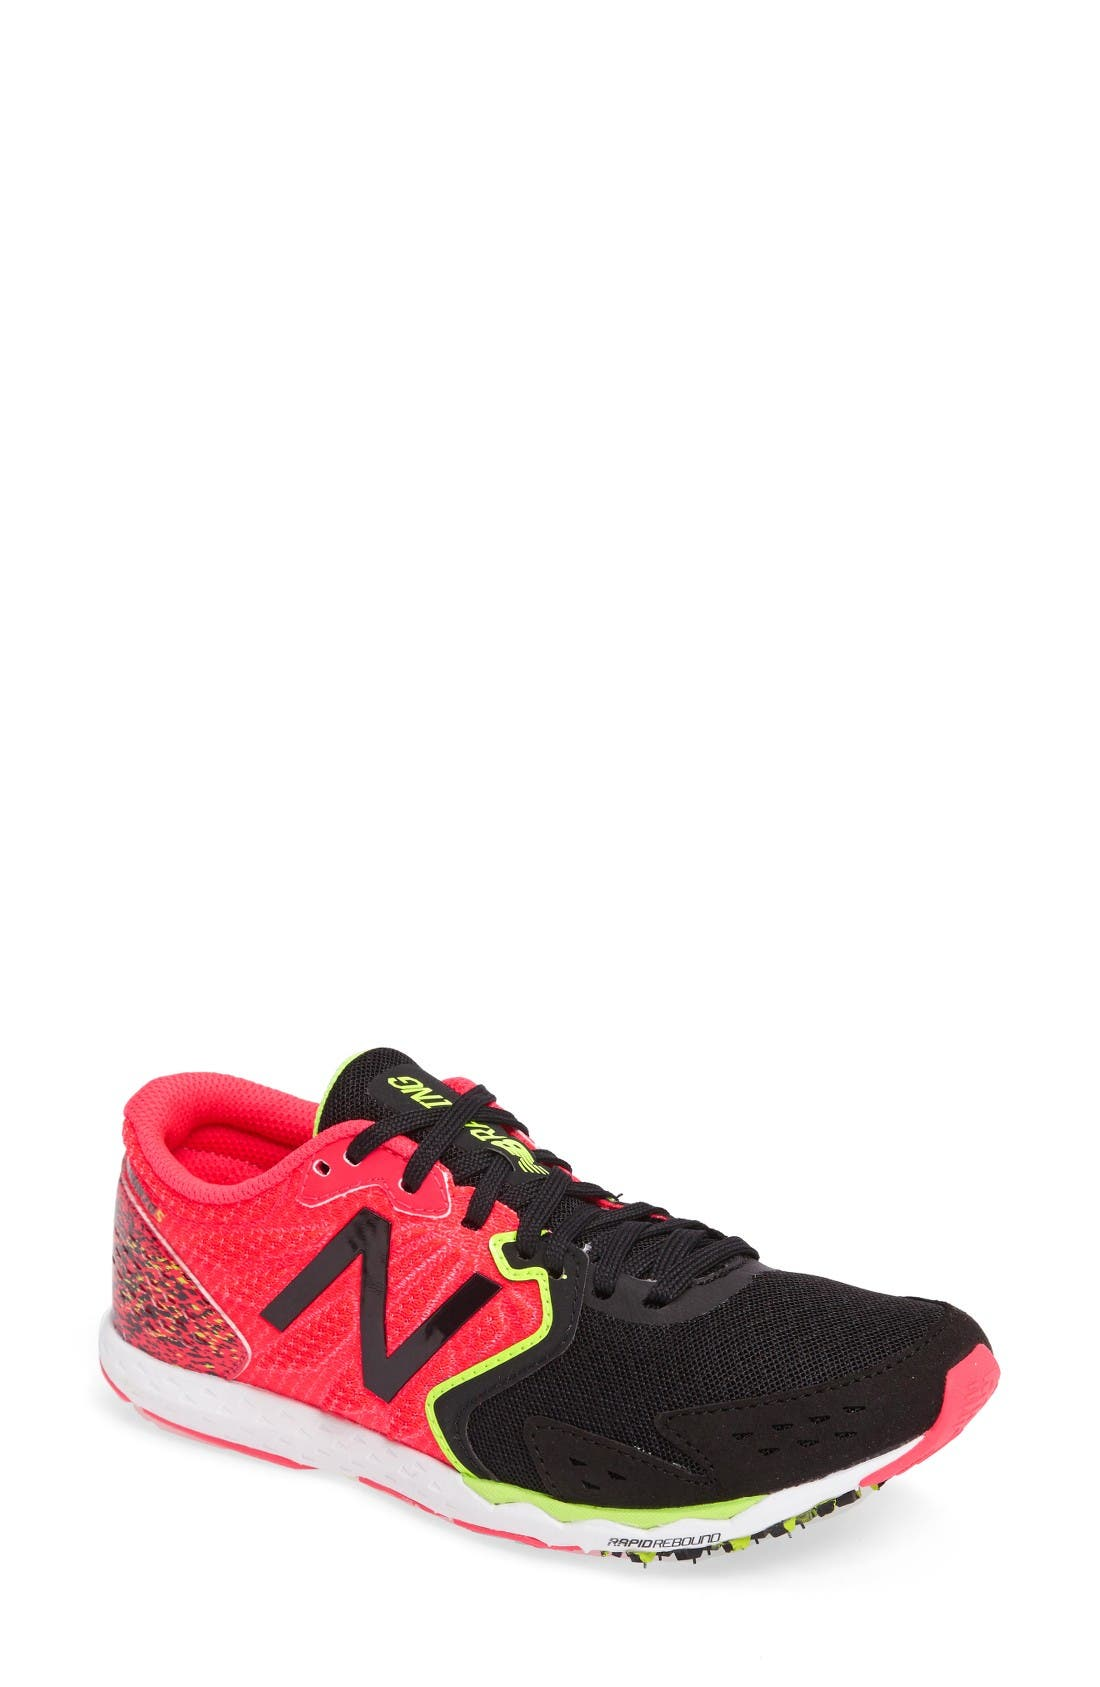 New Balance Hanzo S Running Shoe (Women)